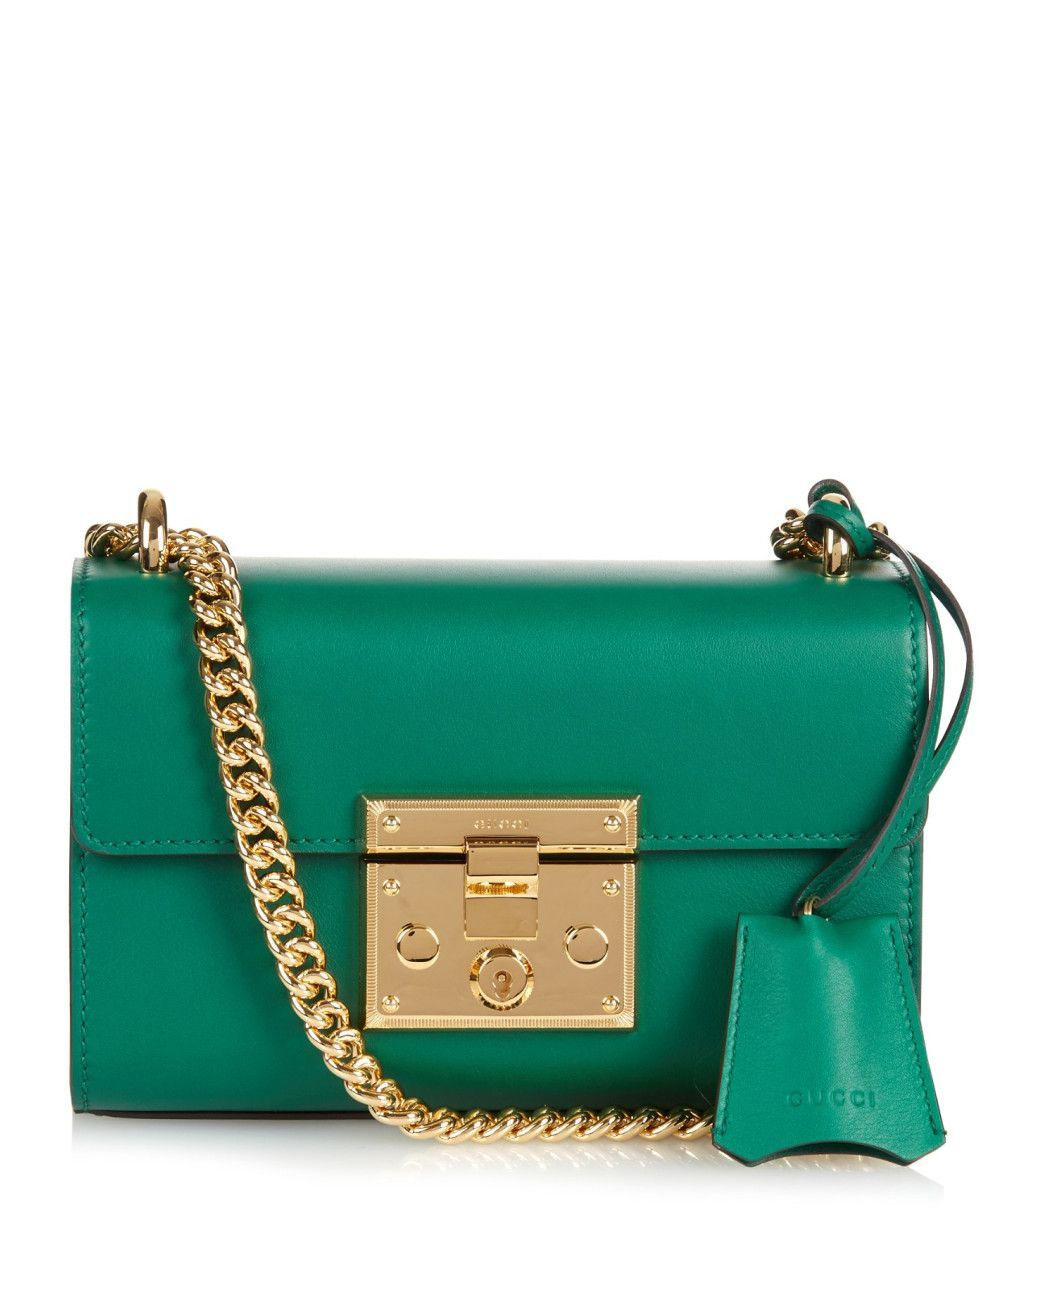 747431ffe886 Gucci | Green Padlock Mini Leather Shoulder Bag | Lyst Handbag Lyst...  #greenhandbags